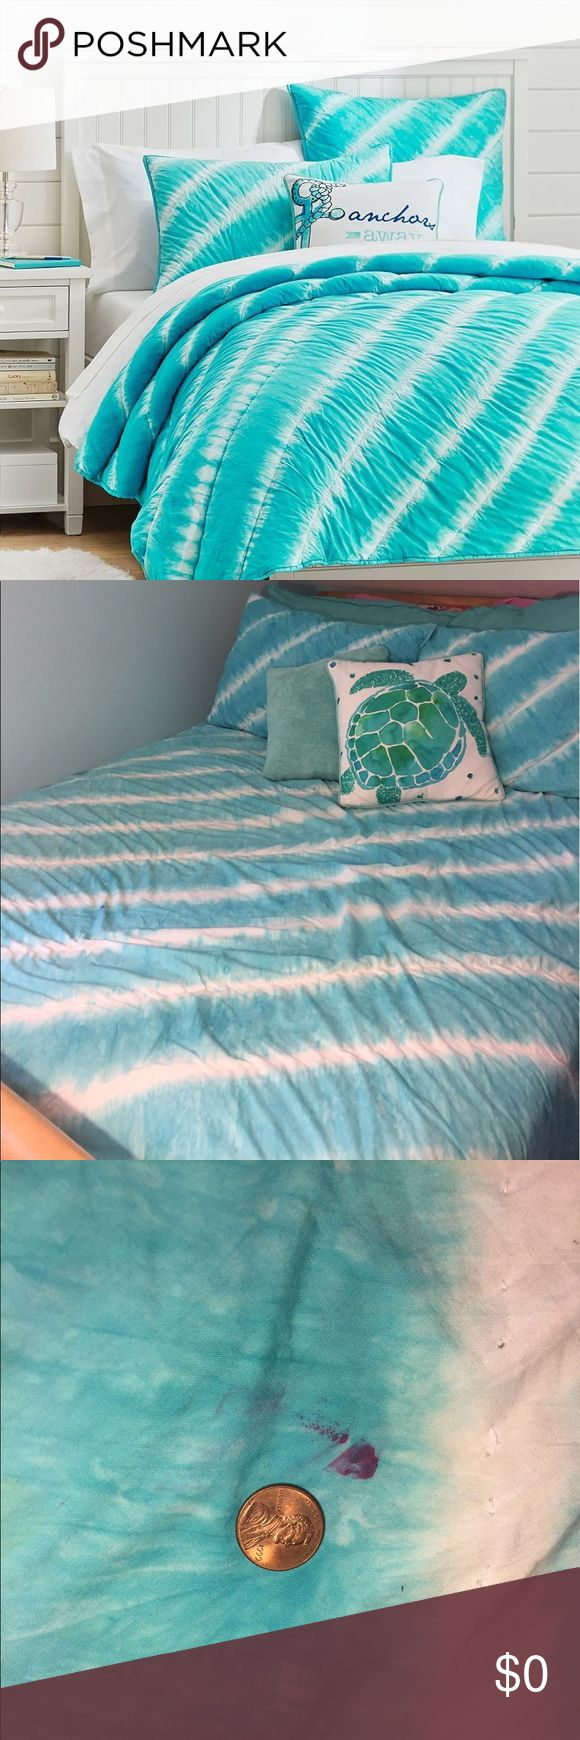 Bundle!! Tahiti Tie Dye Quilt+Sham Set See invididual listings for details. Shams in great condition. Small nail polish stain on quilt. Decorative pillows not included. Pottery Barn Teen Other